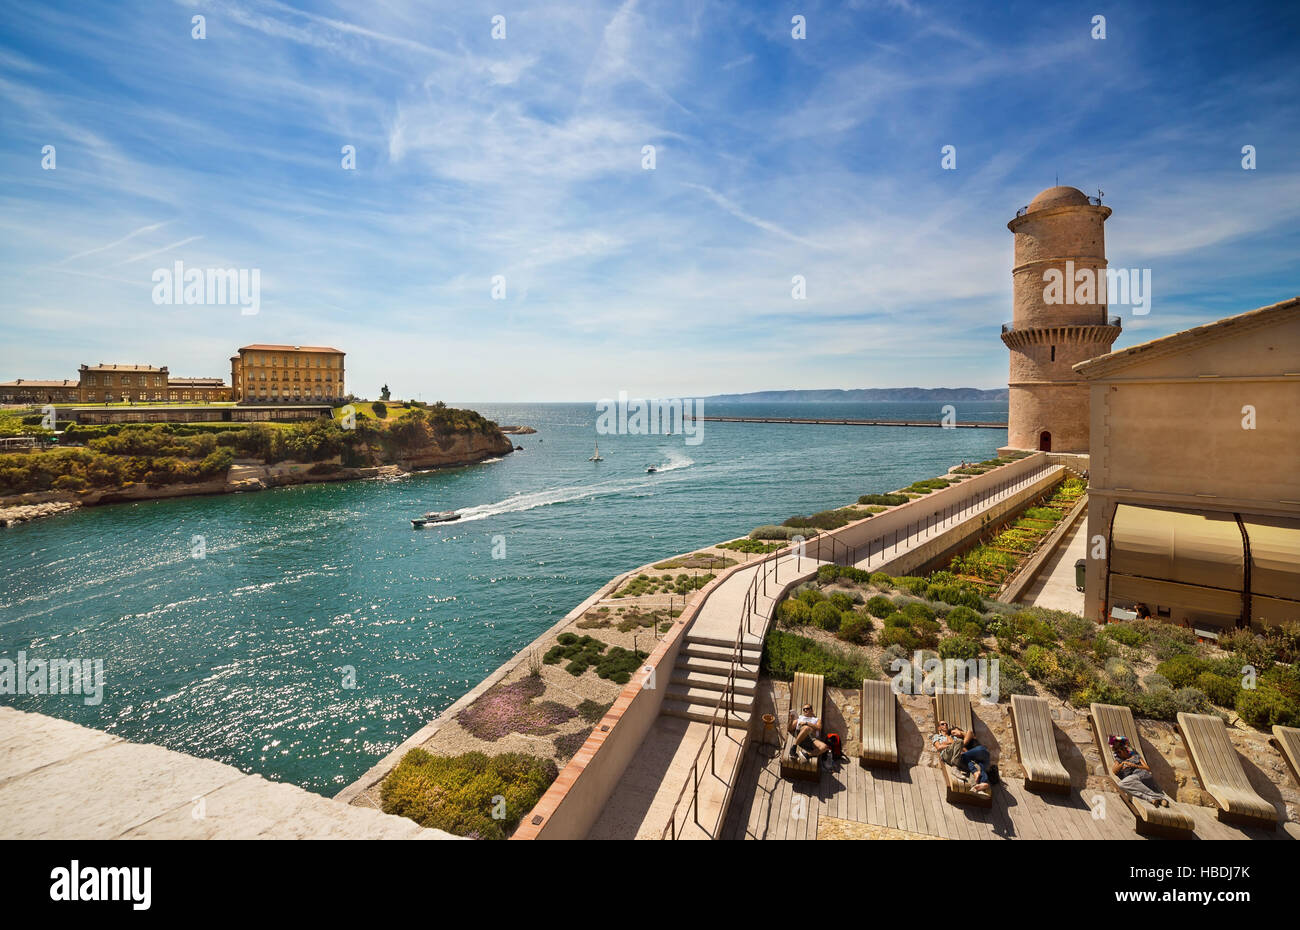 Fort Saint Jean in Marseille, France. - Stock Image